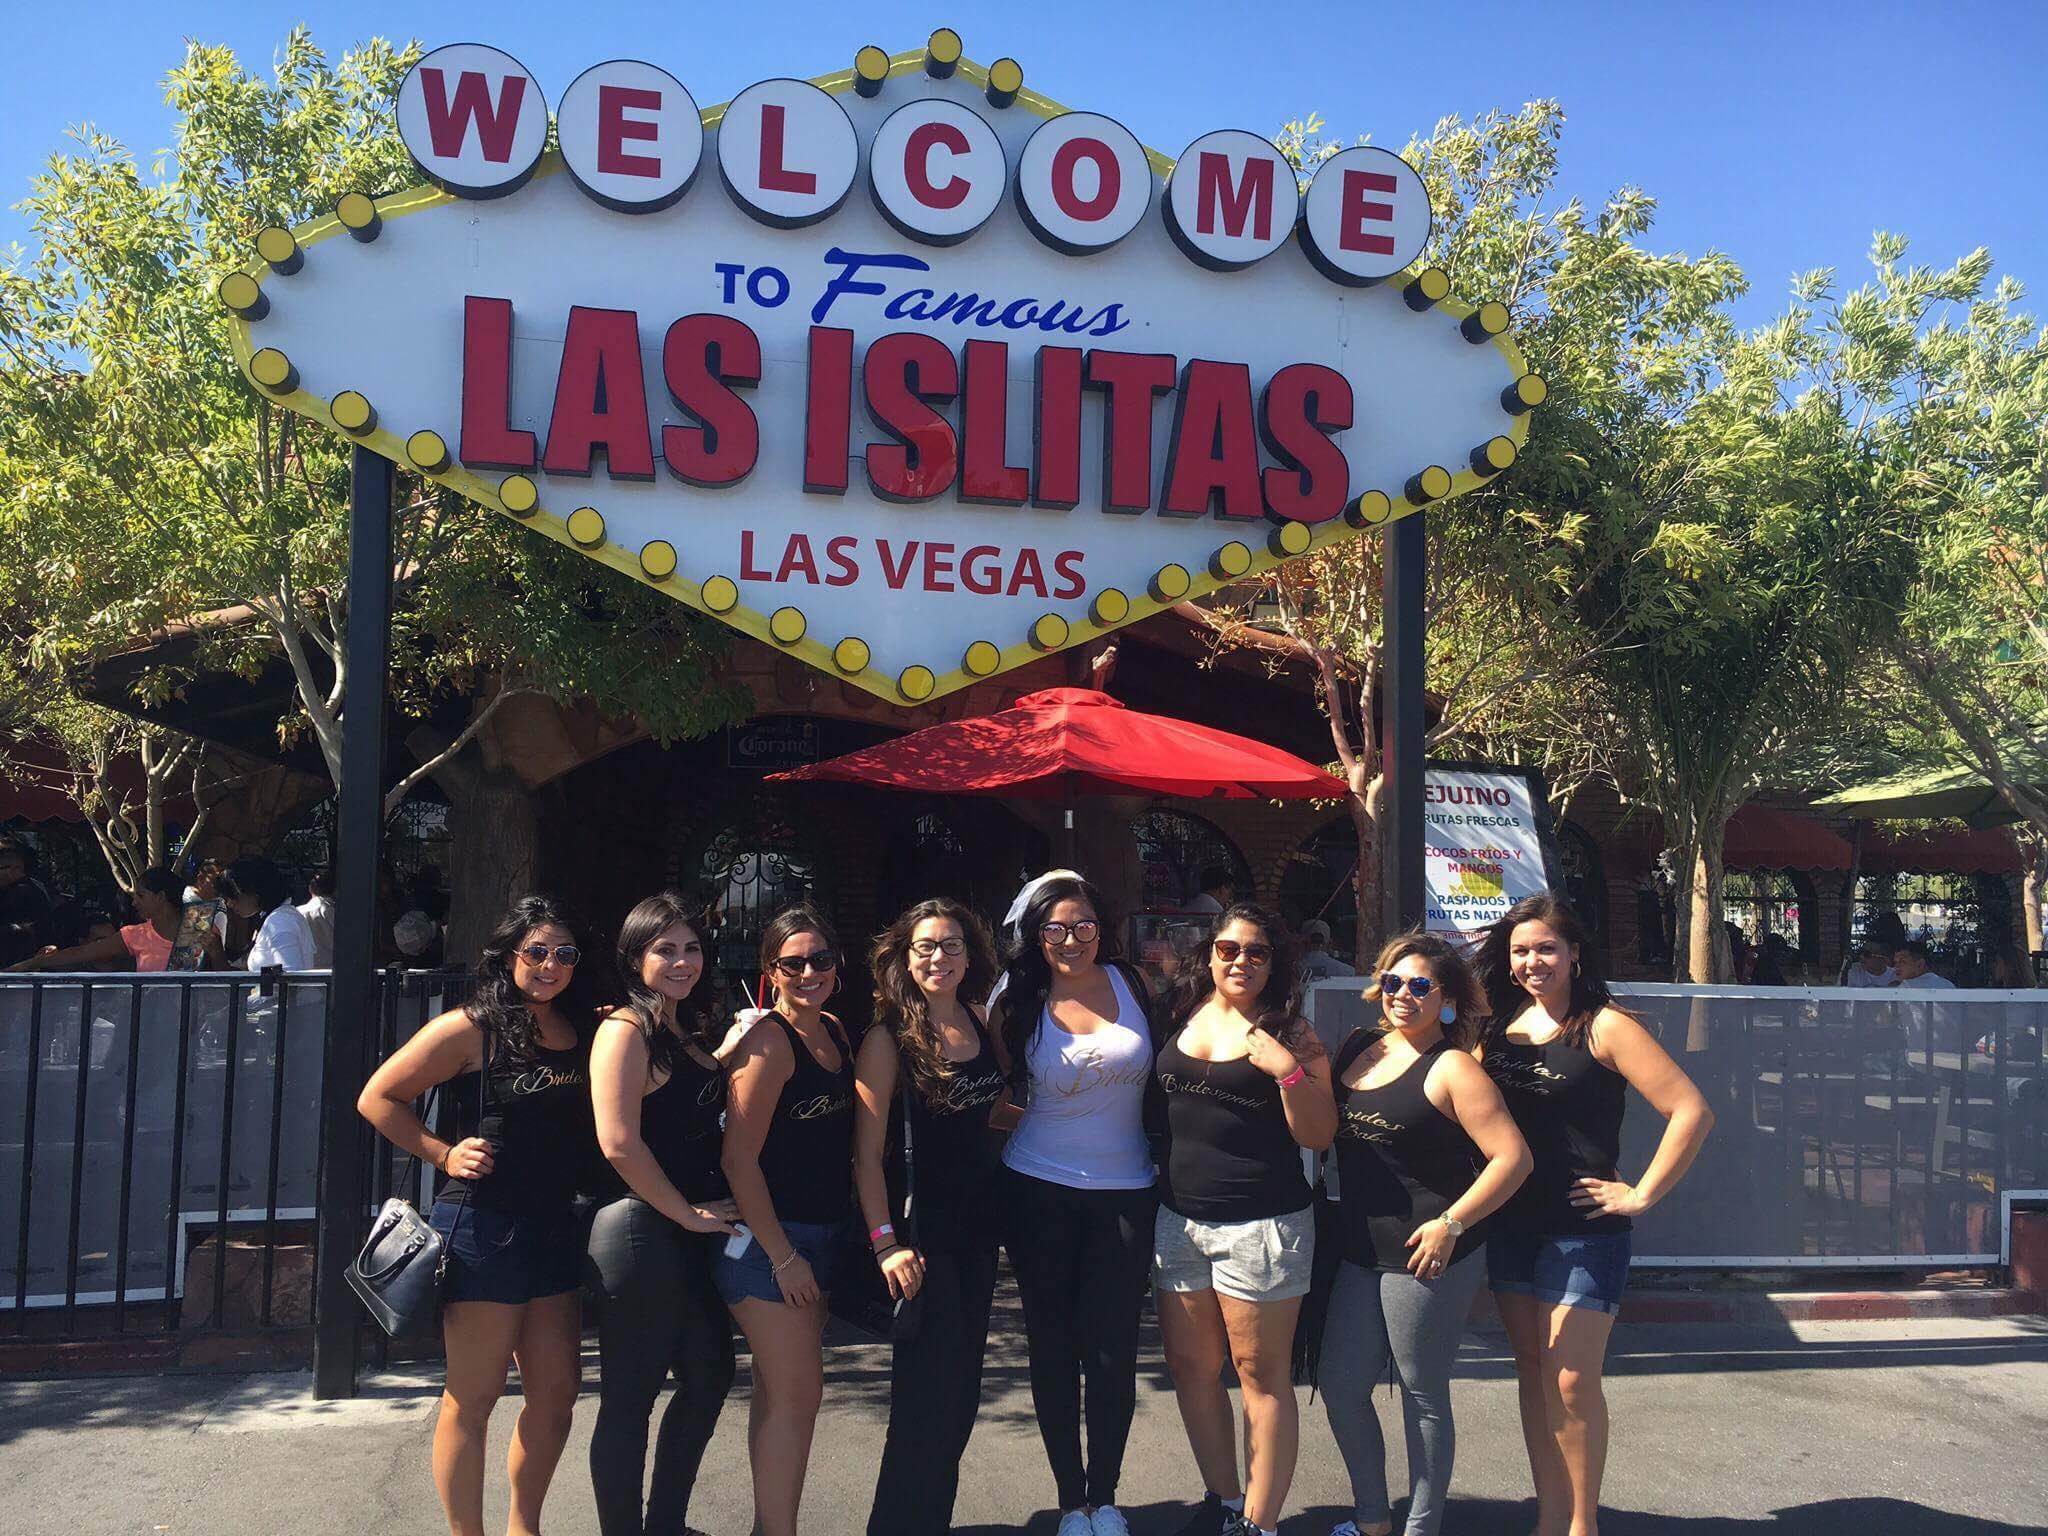 bride-and-her-bridesmaids-at-las-islitas-vegas-for-their-last-day-drinking-micheladas